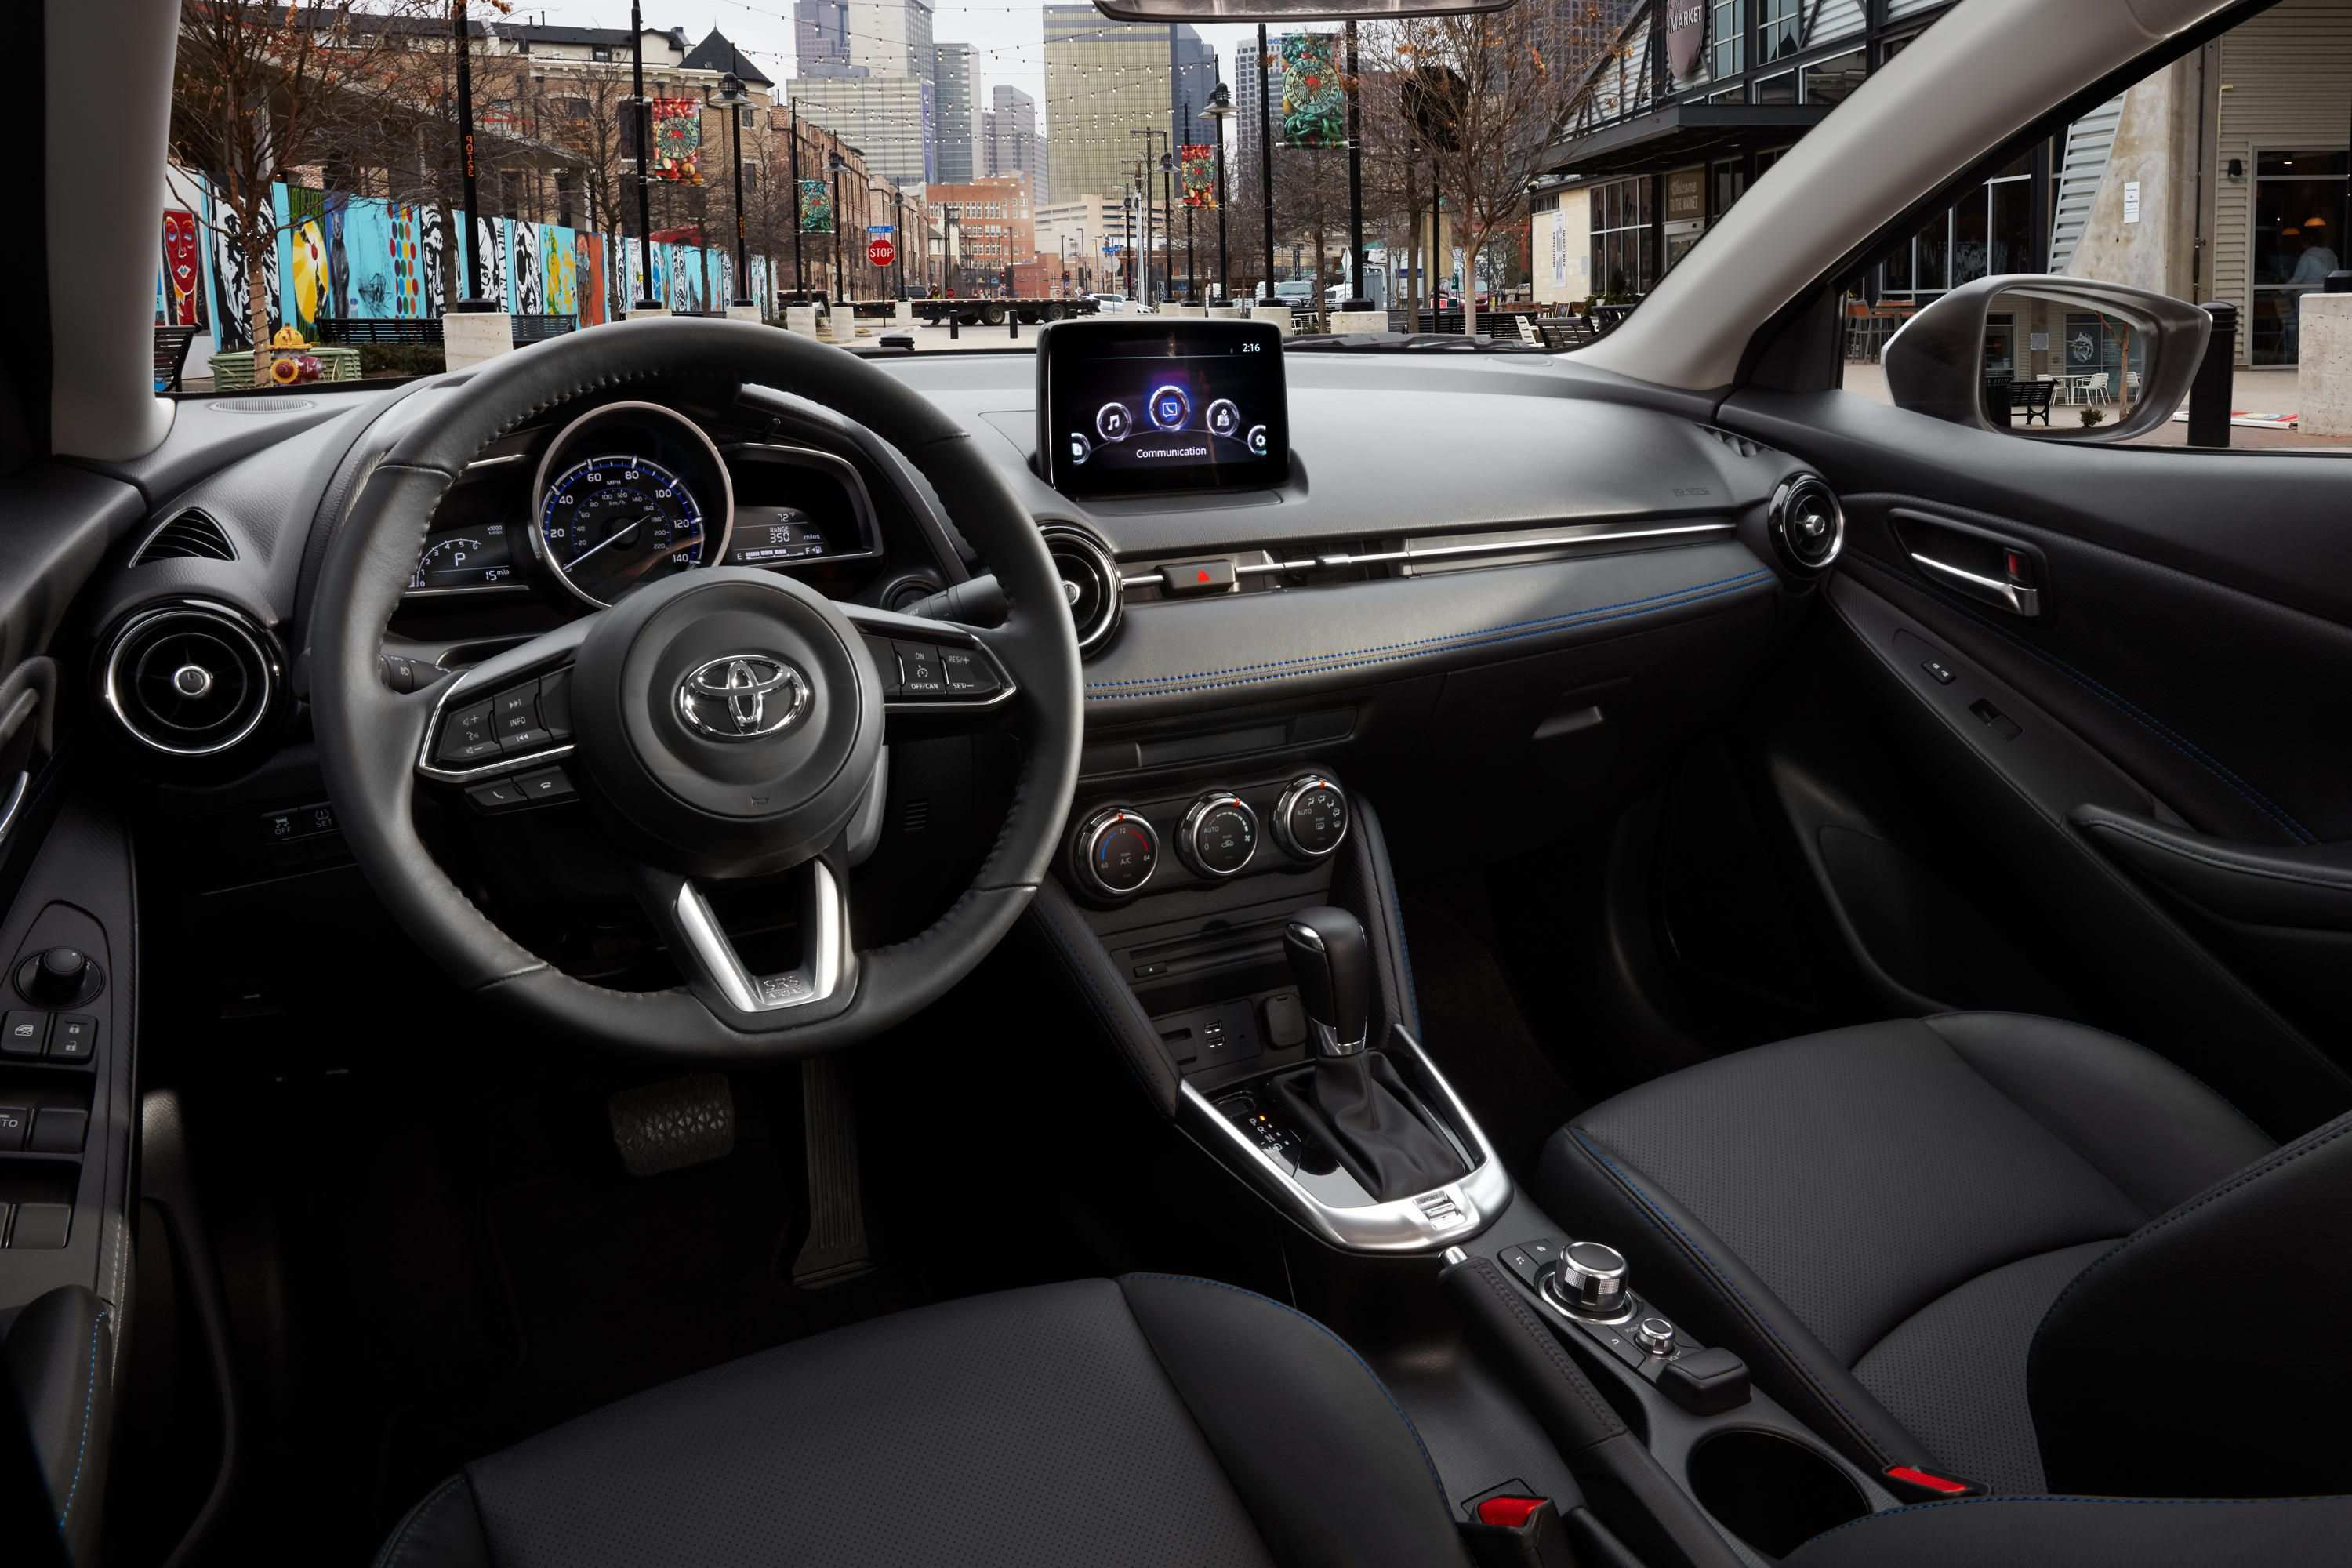 71 Best 2019 Scion IM Images